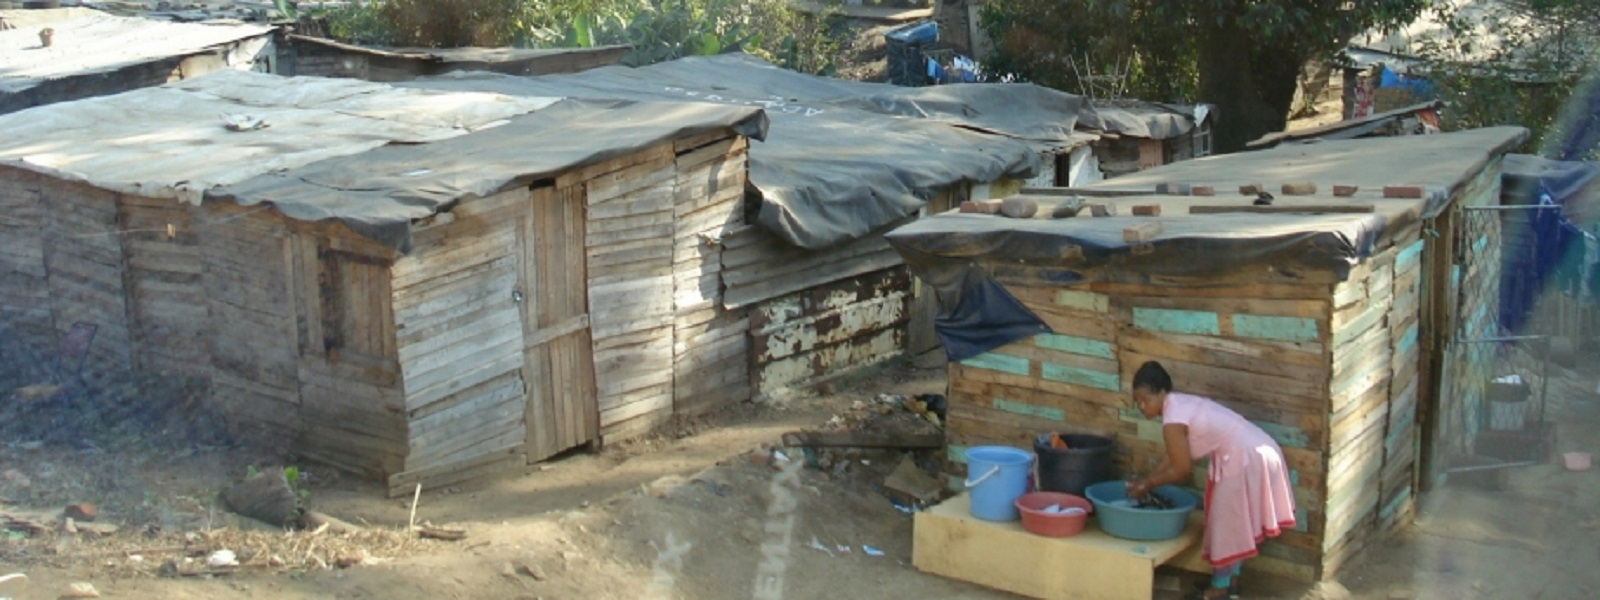 poverty in south africa essay we can do your homework for you unitingpresbyterian org